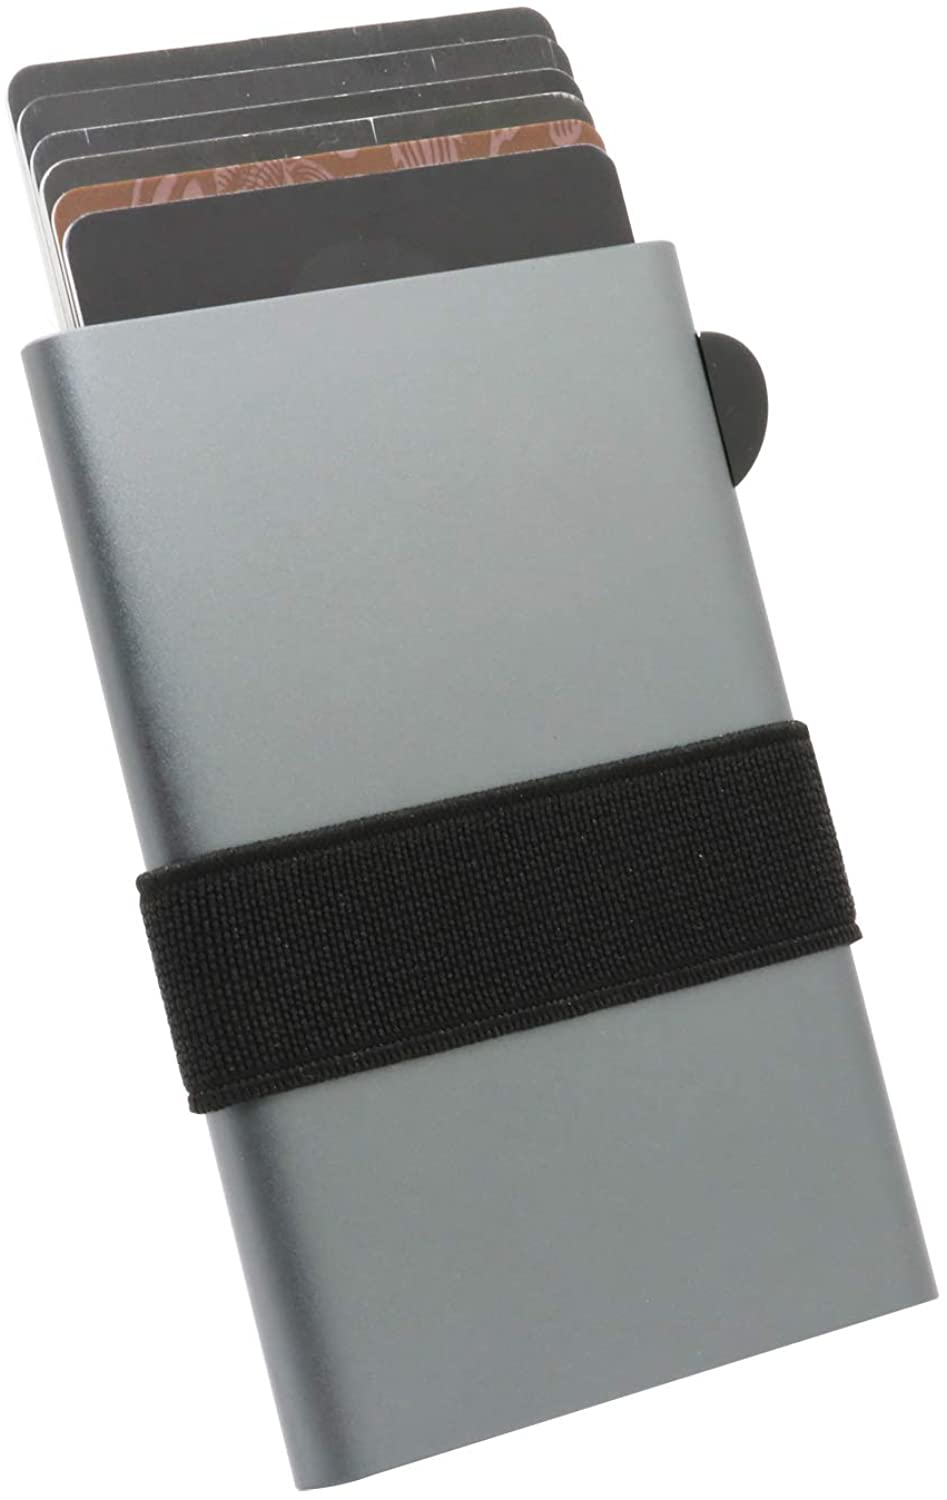 Credit Card Holder RFID Blocking, Slim and Lightweight Ejector Wallet